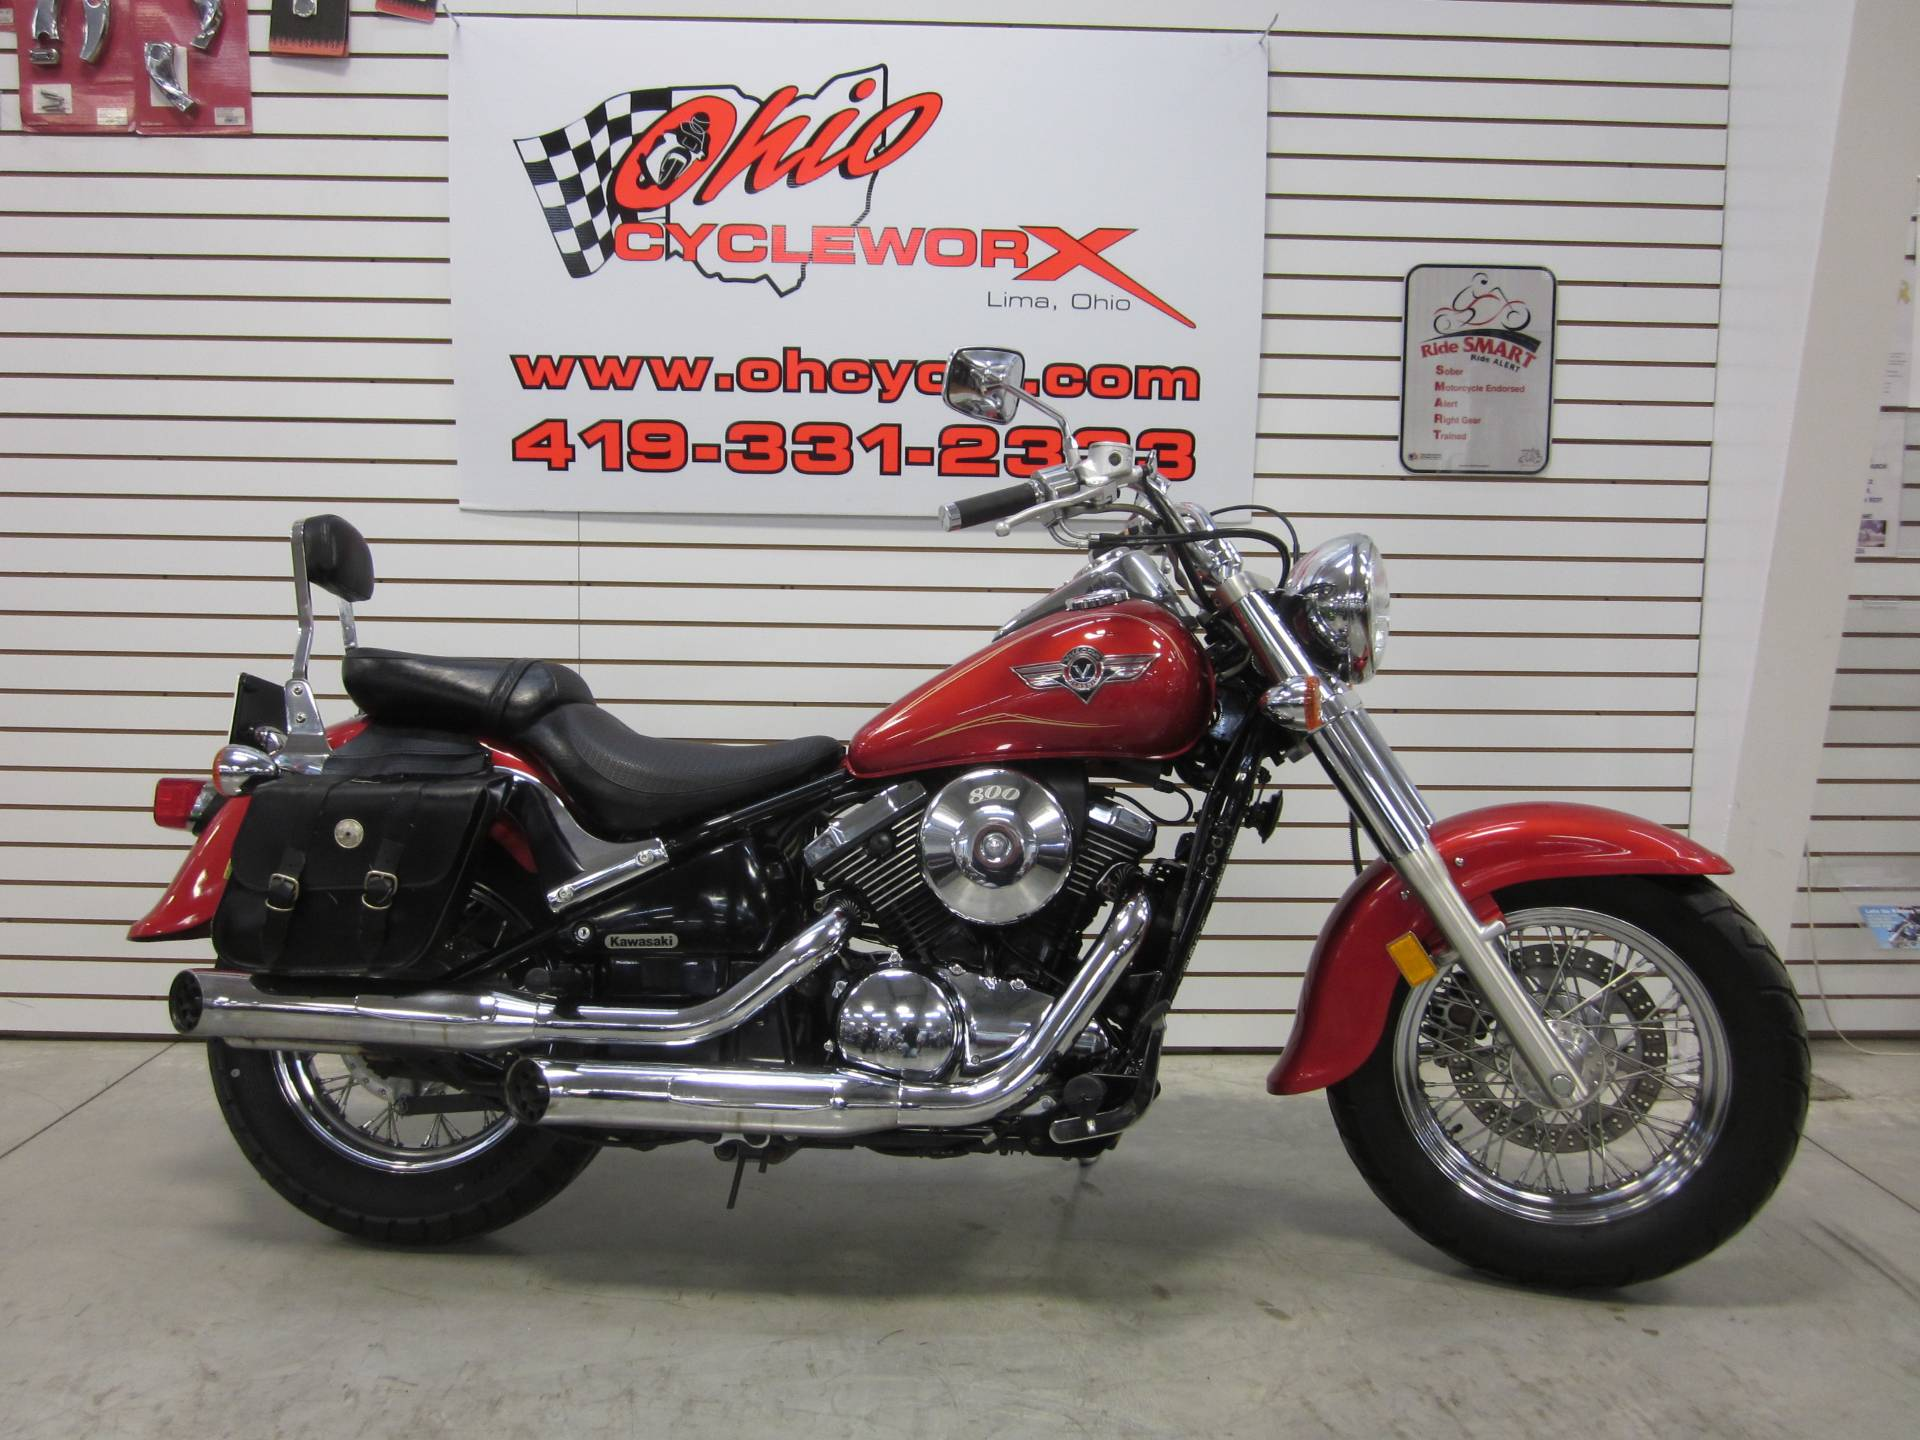 hight resolution of 2005 kawasaki vulcan 800 classic in lima ohio photo 2